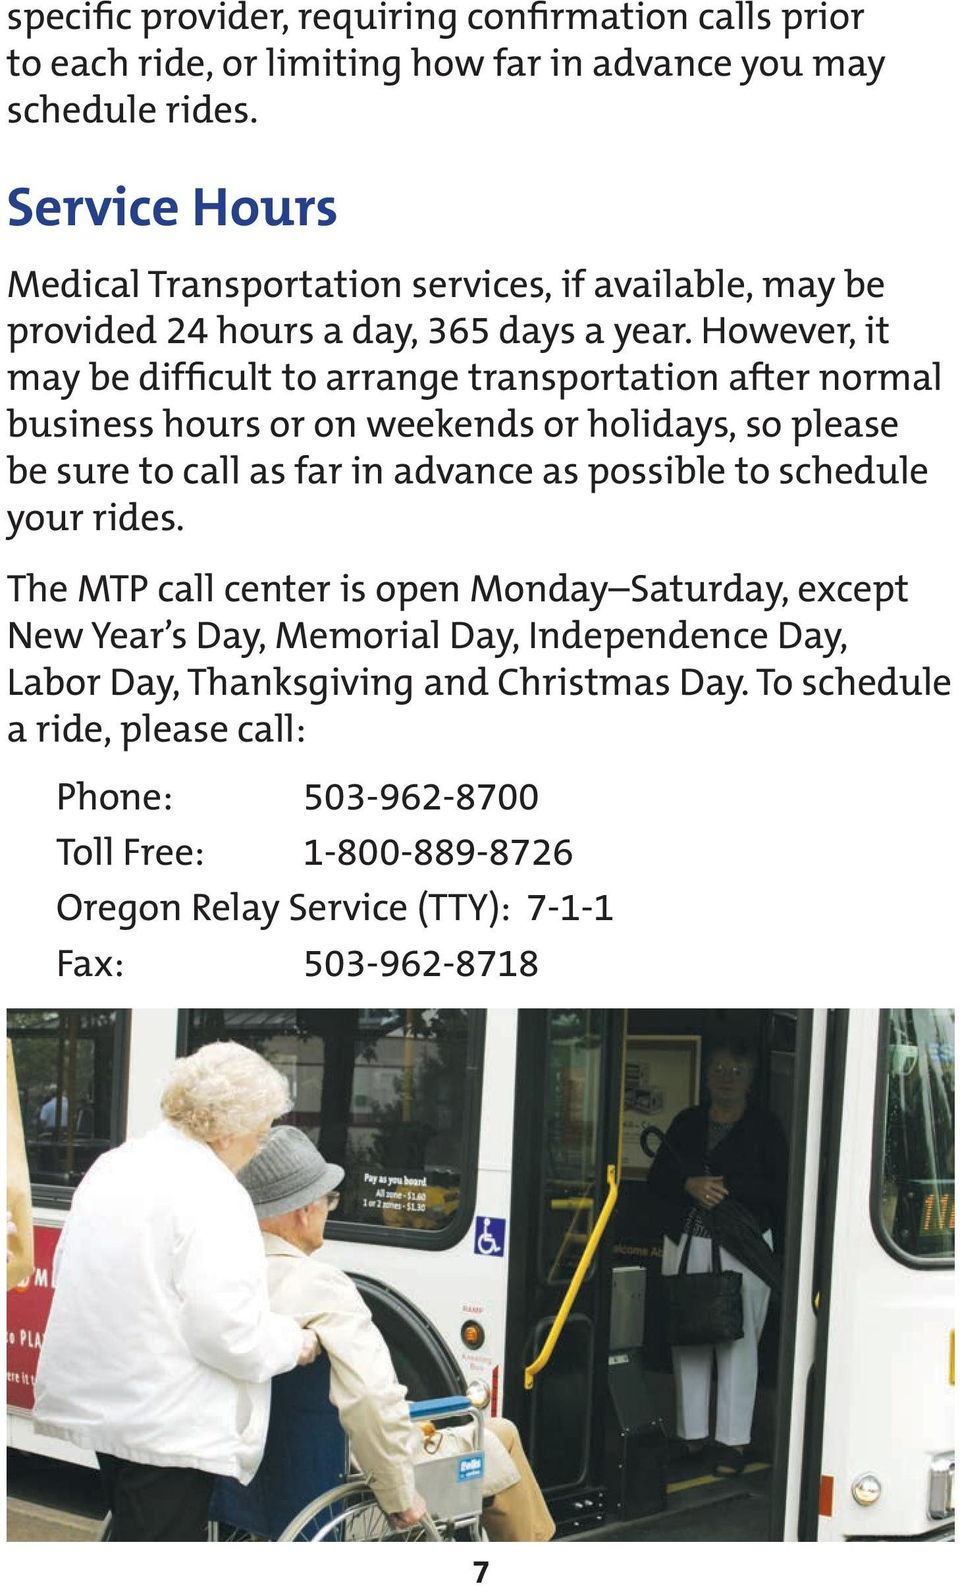 However, it may be difficult to arrange transportation after normal business hours or on weekends or holidays, so please be sure to call as far in advance as possible to